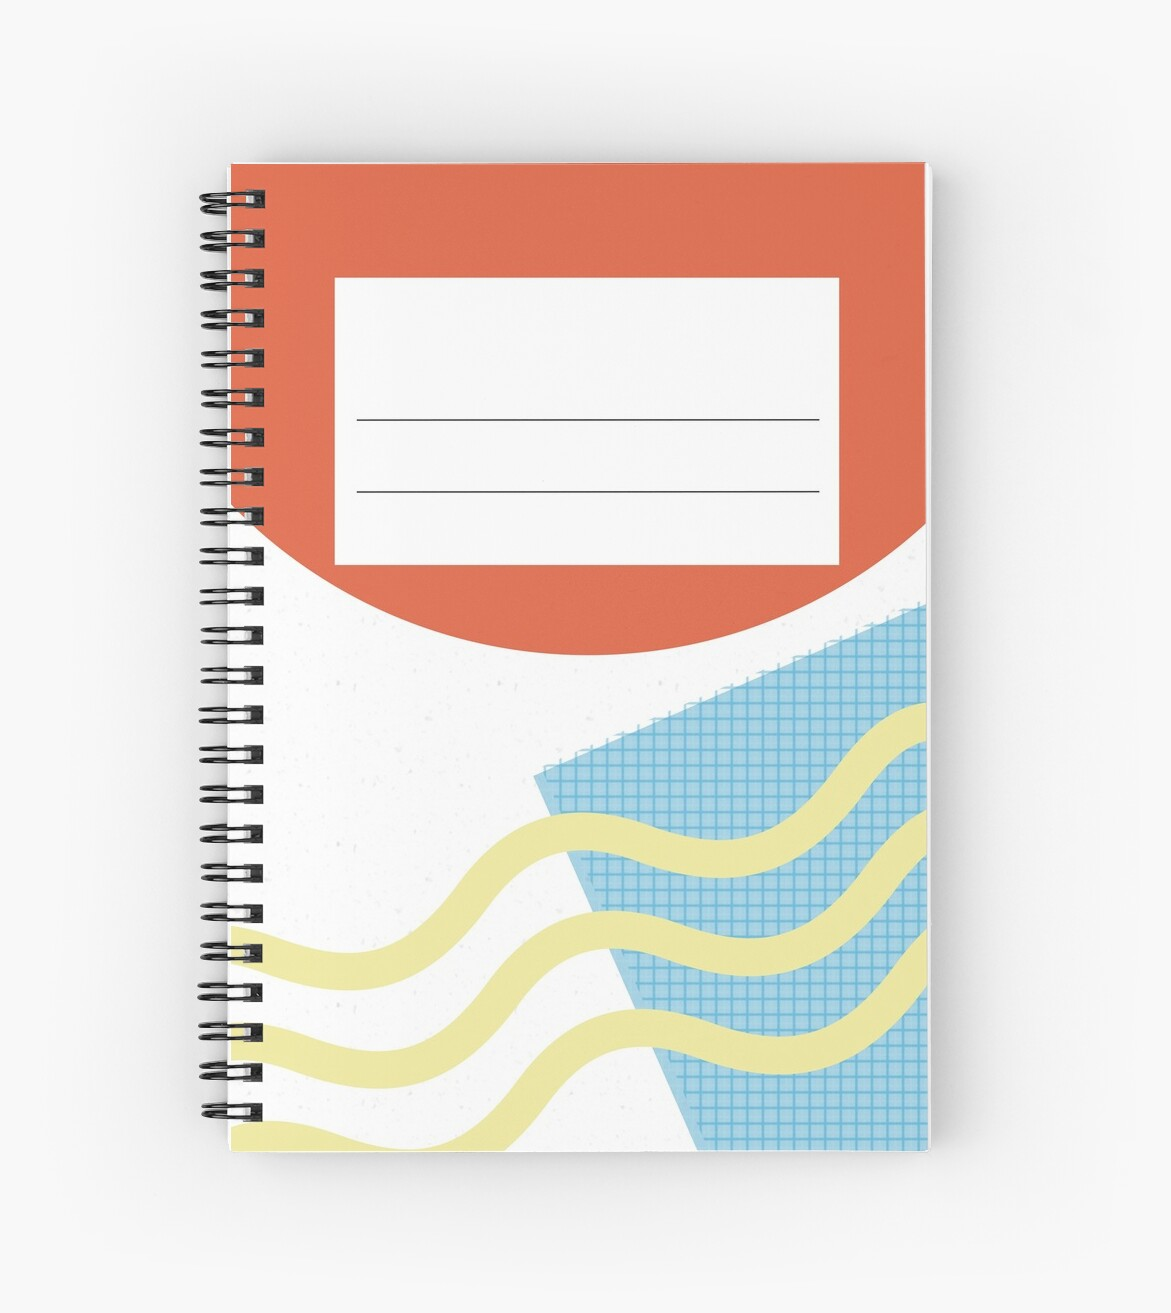 80s Inspired Notebook Design by Allyson Hall